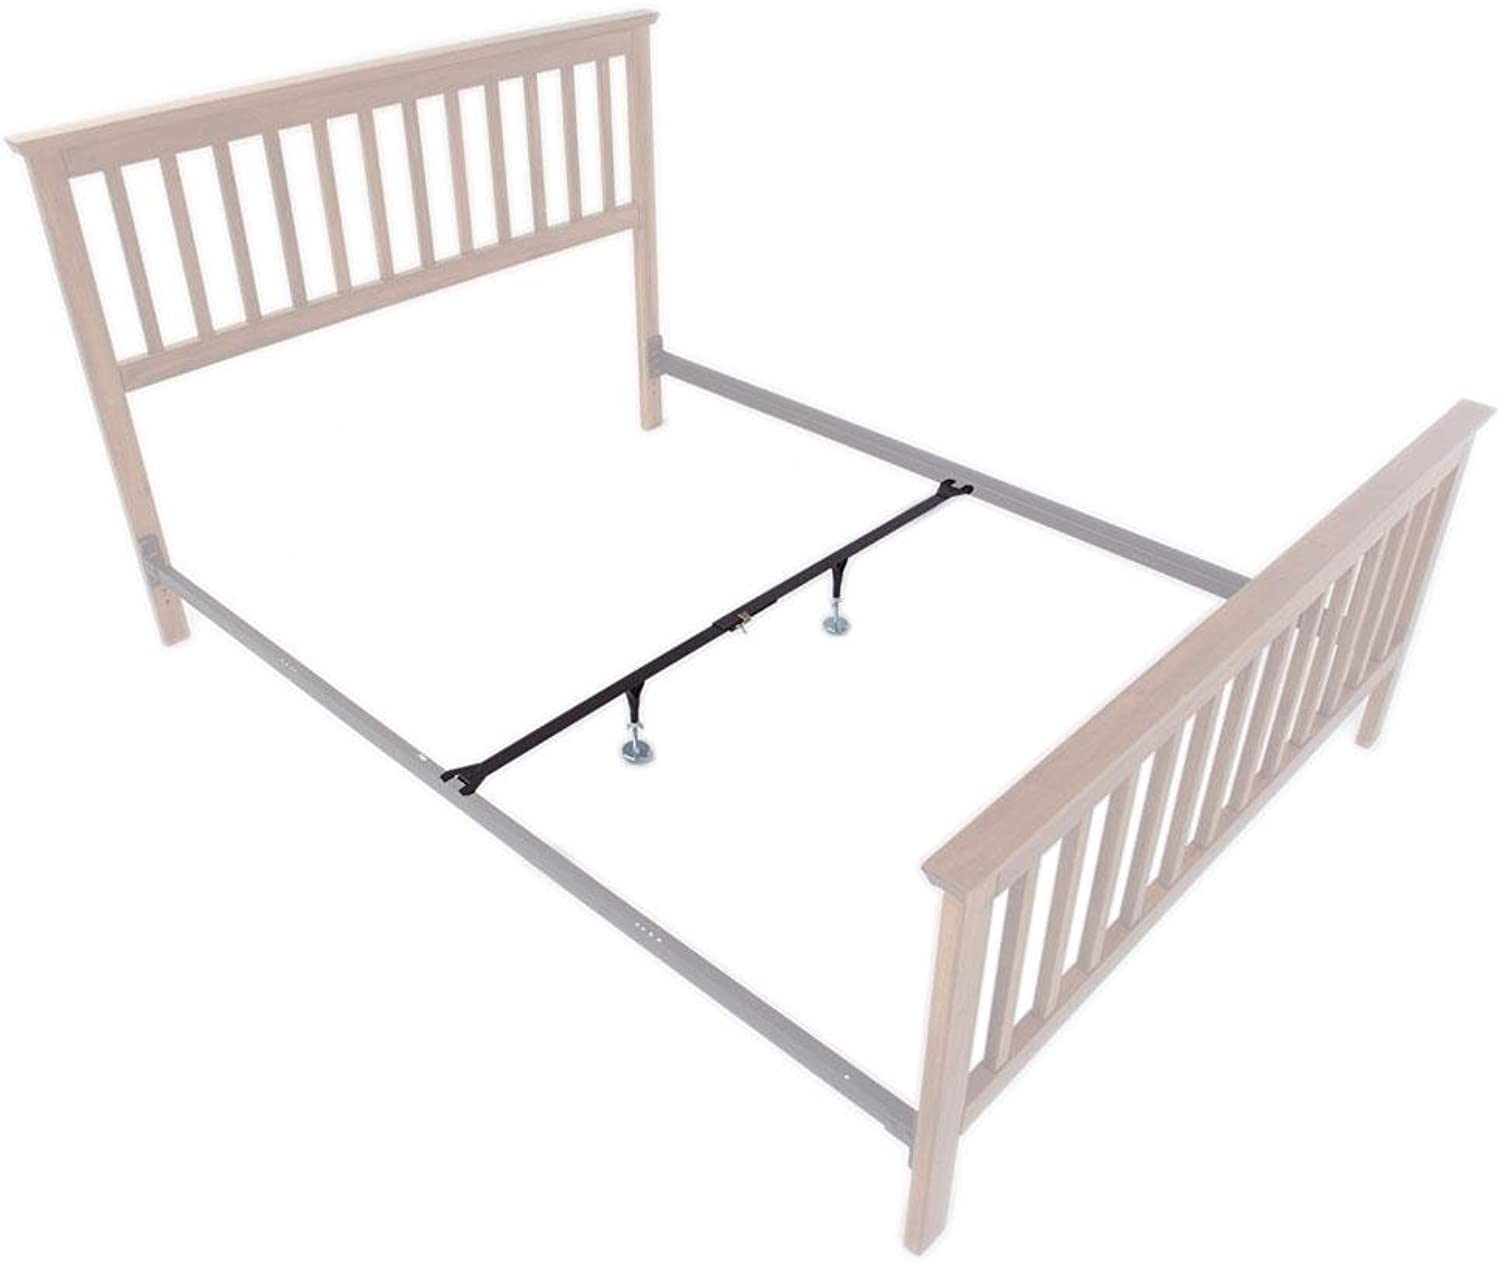 InstantLift IL-1 Full Queen Center Support System for Metal Bed Rails, 1 Rail, 2 Legs